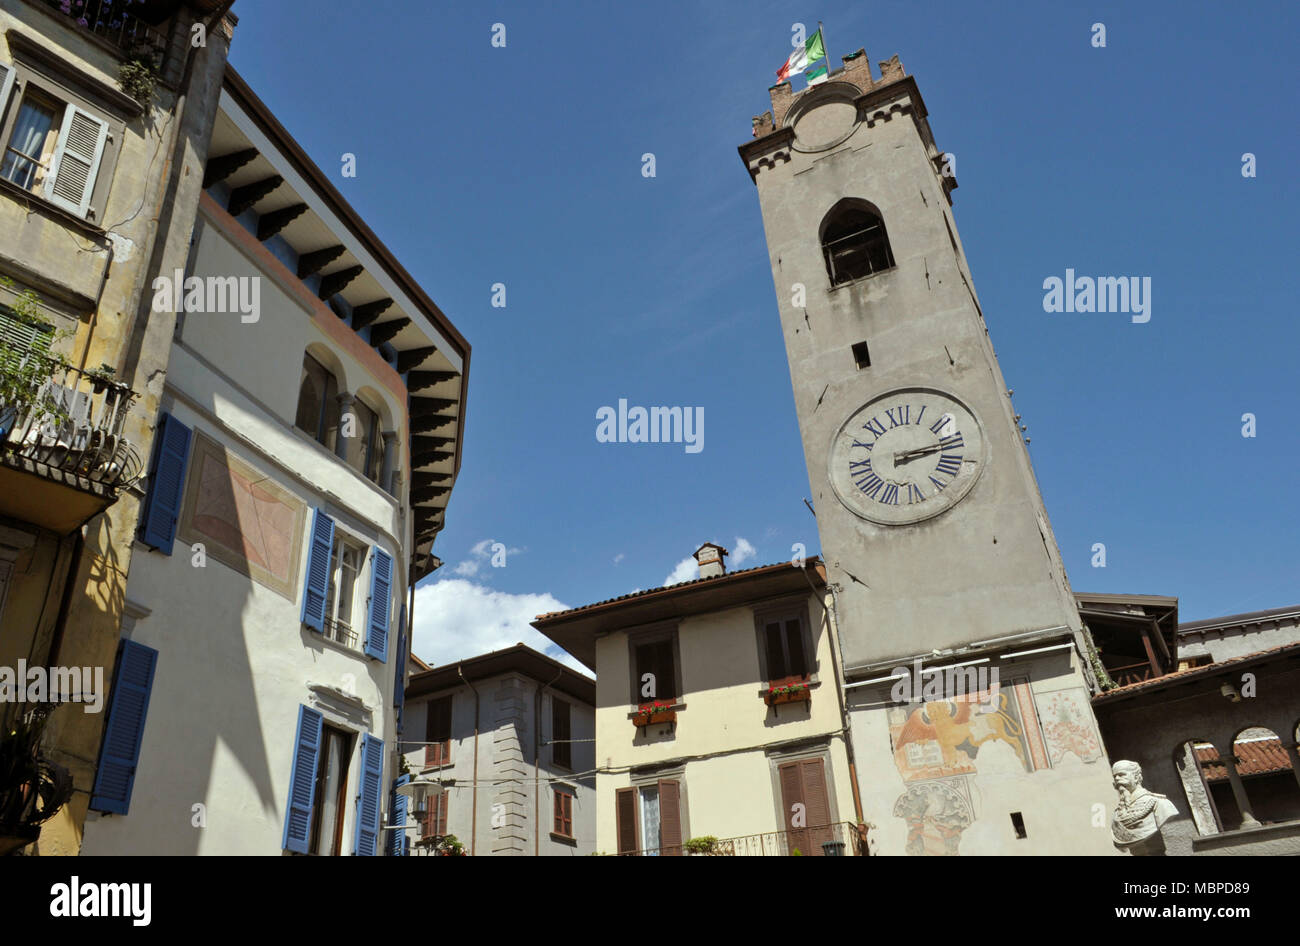 Torre Civica, clock tower in Lovere, lake Iseo, Lombardy, Italy - Stock Image